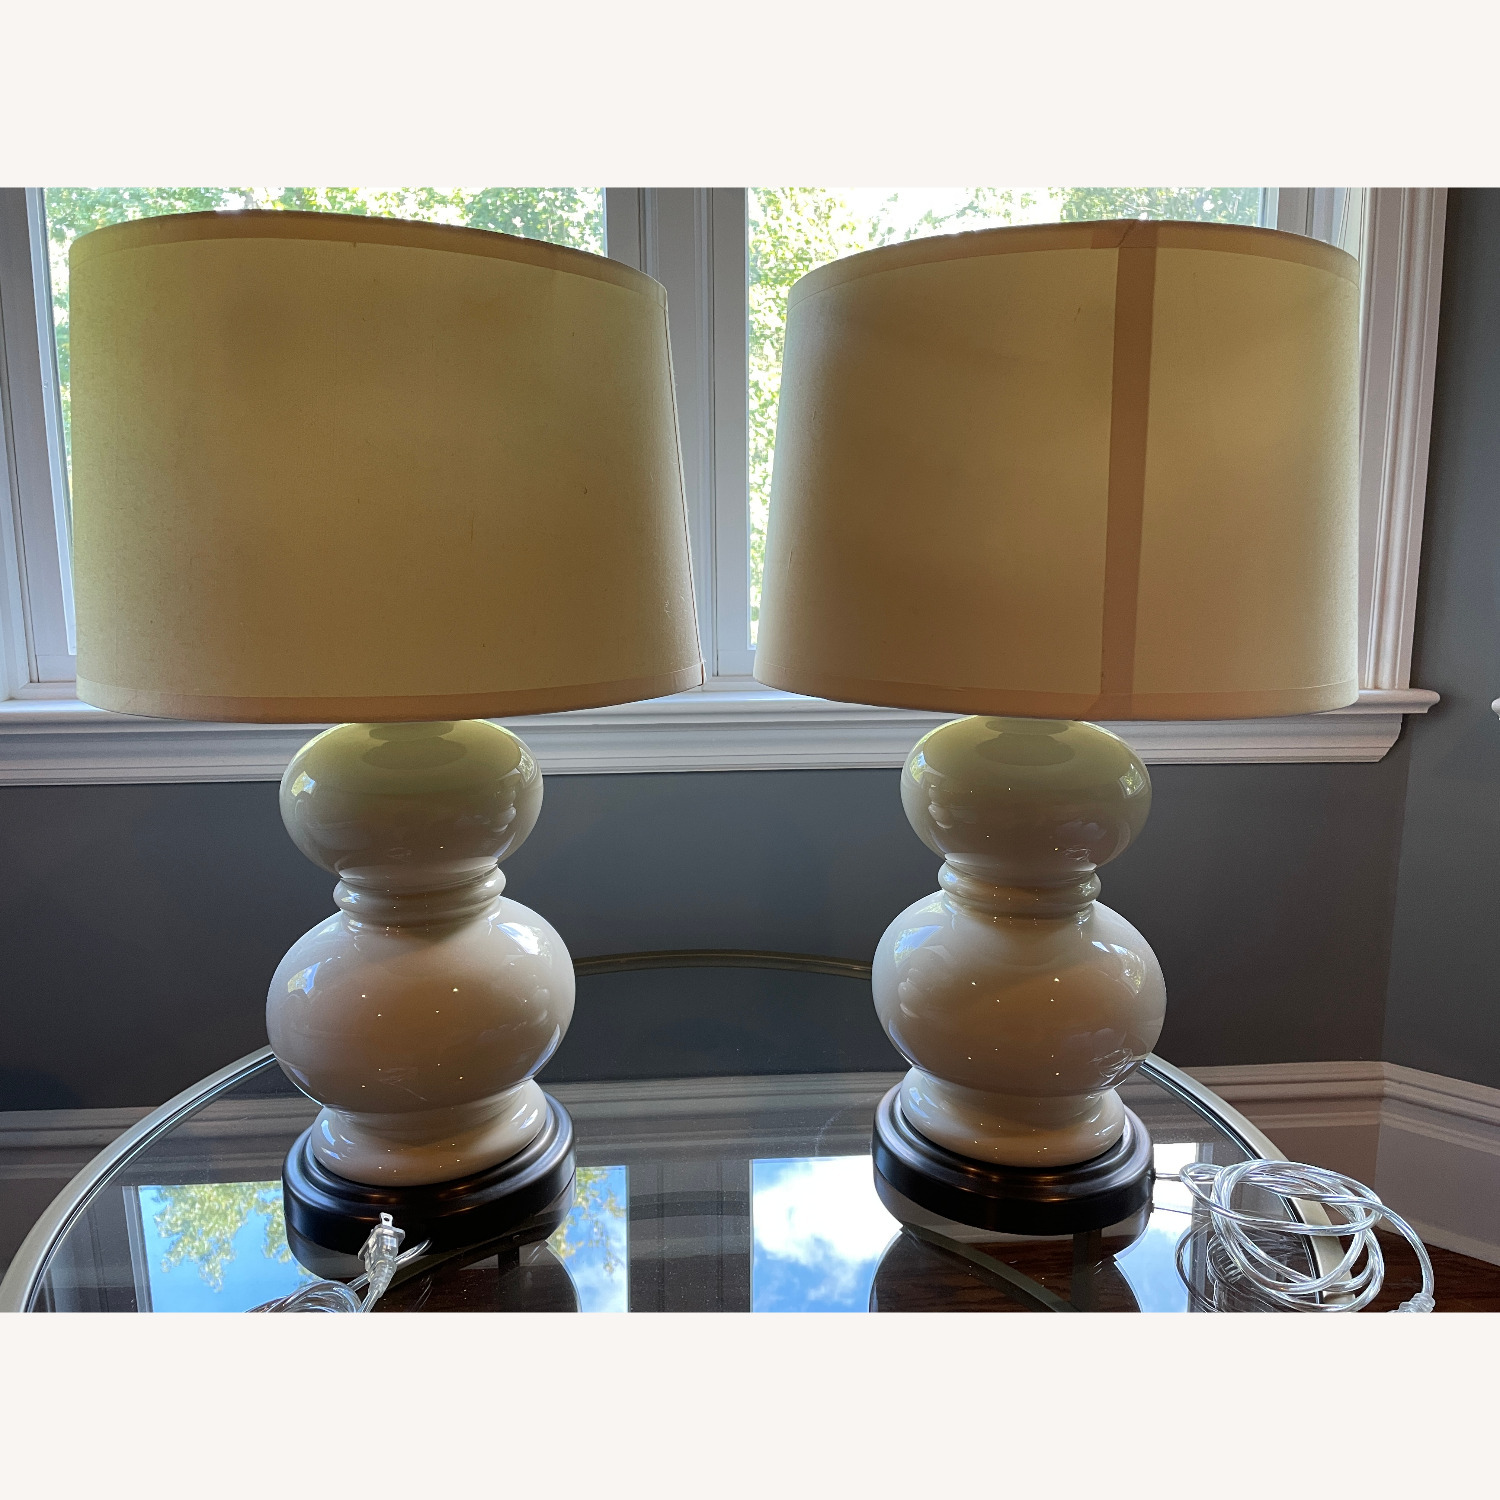 Pottery Barn Table Lamps - image-1